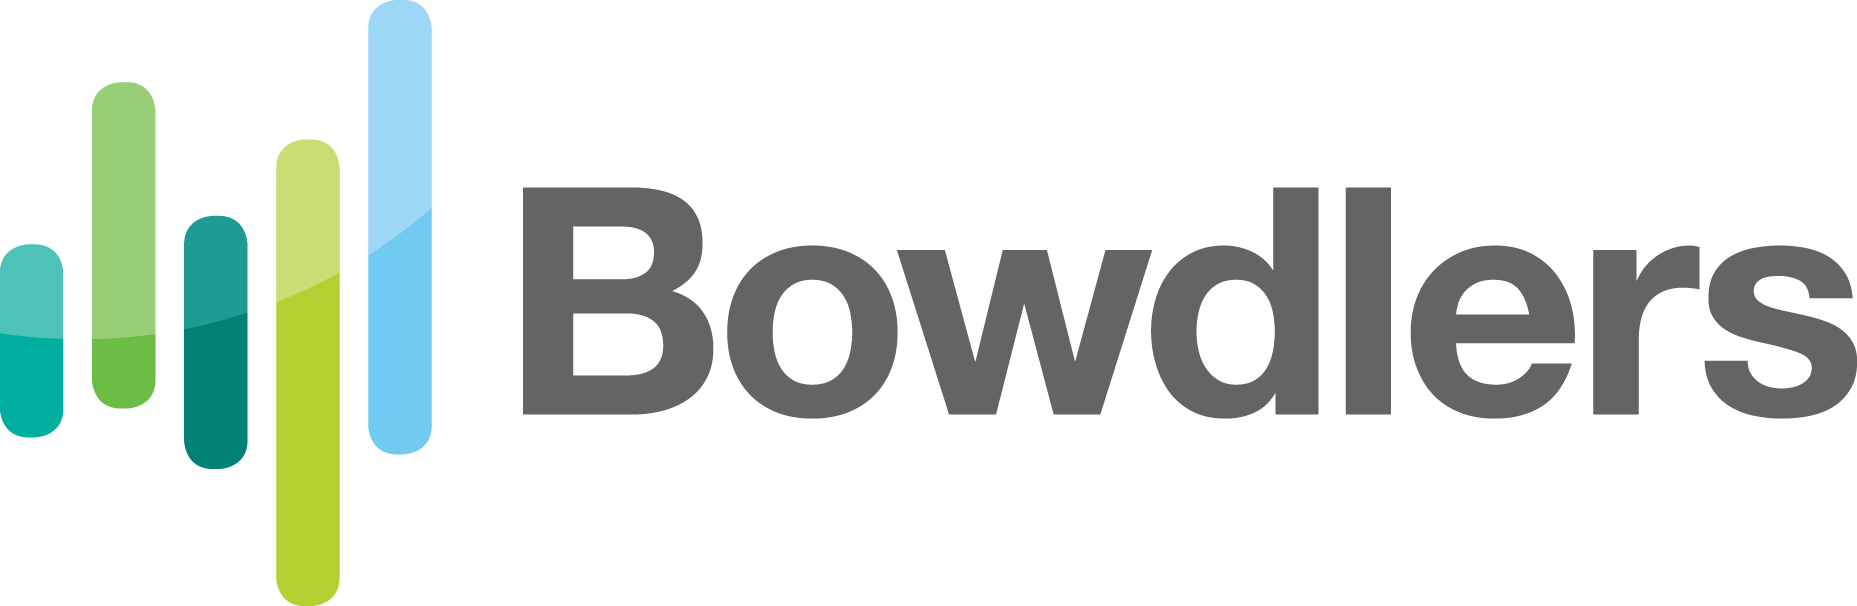 Bowdlers Taxation & Accounting